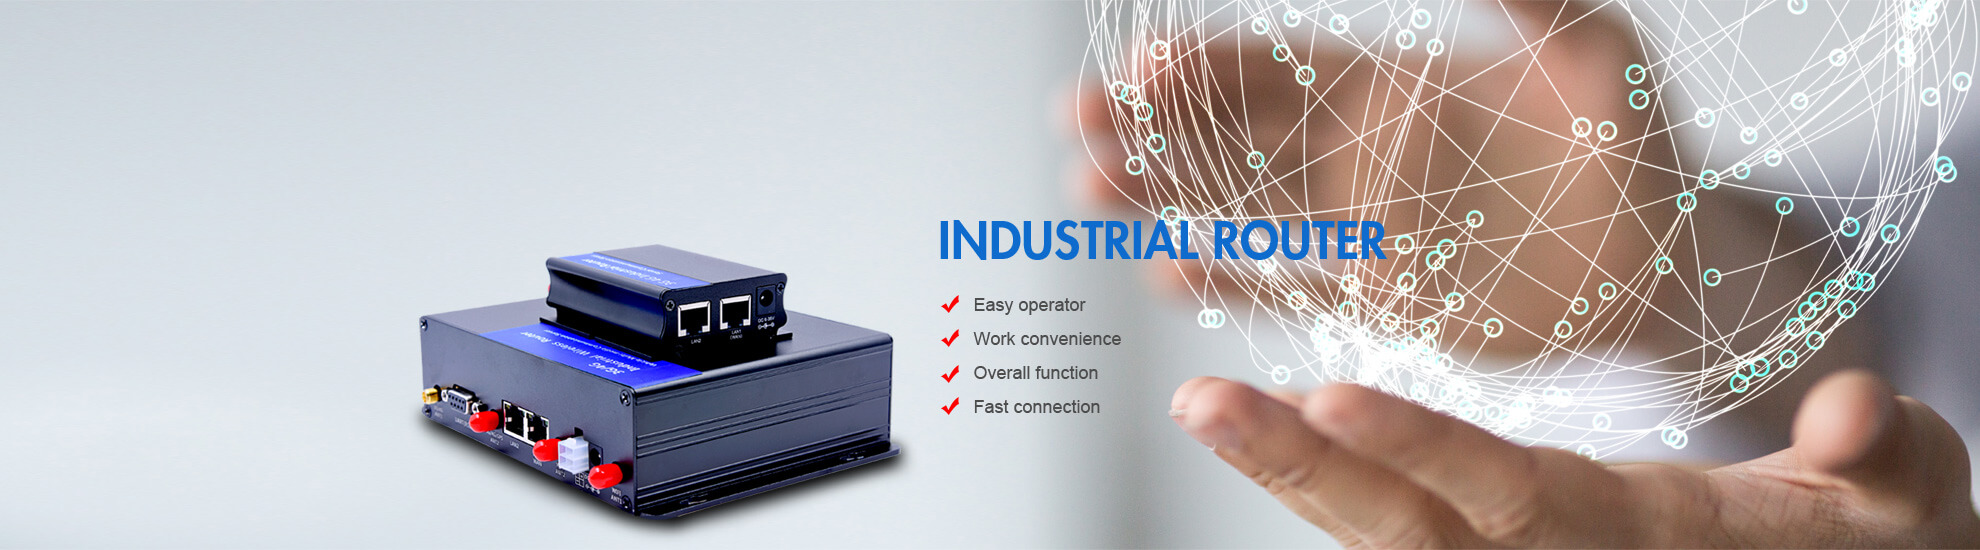 Industrial Router